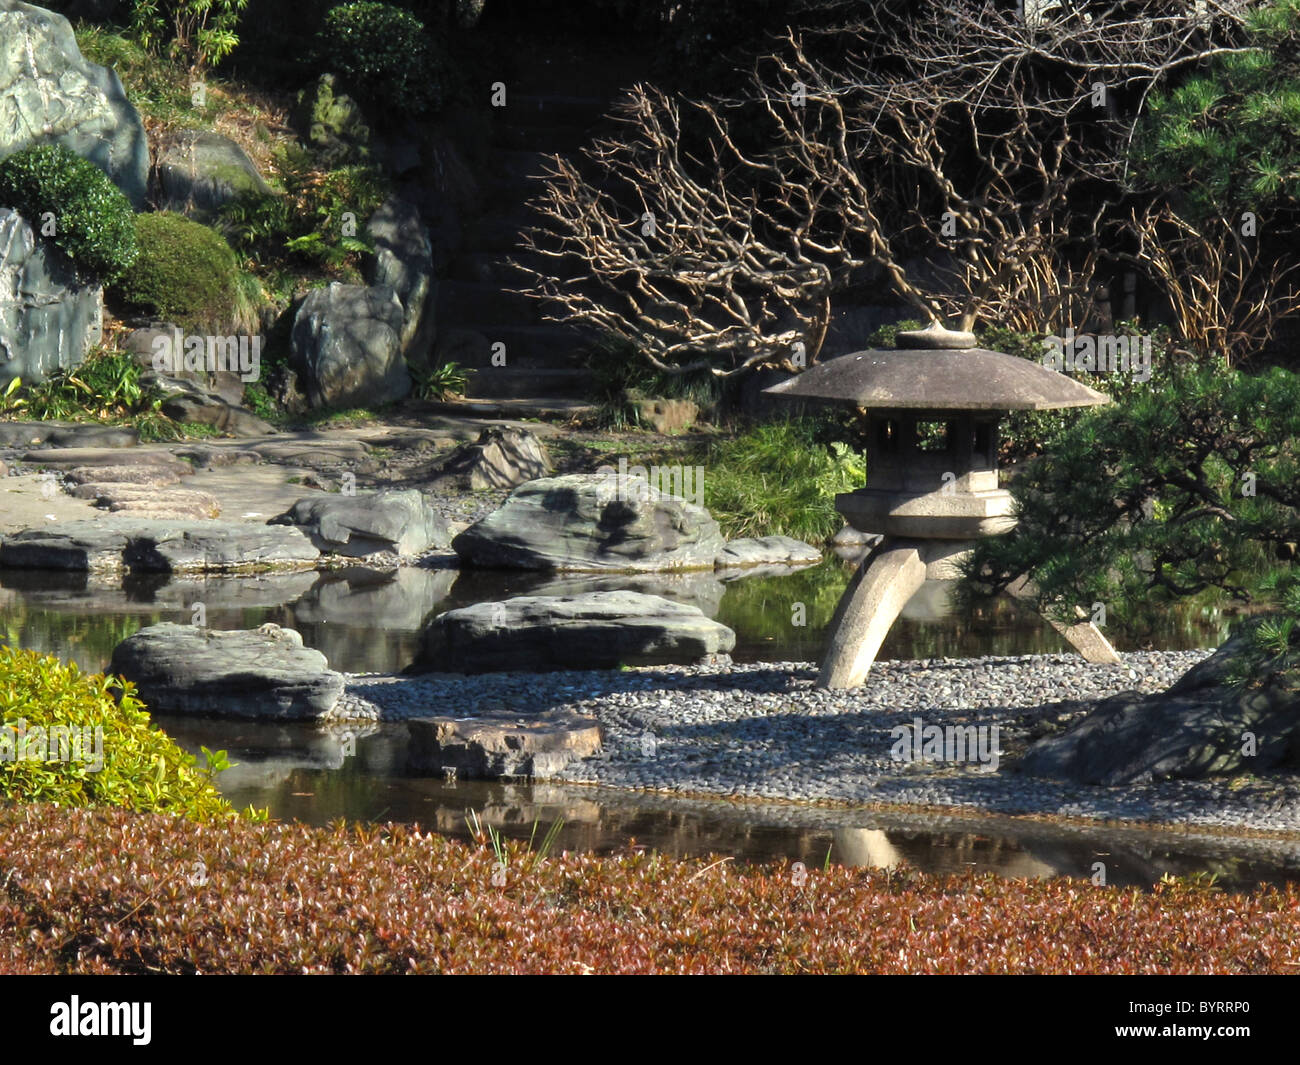 View from the Imperial Palace east garden, Tokyo, Japan. Yukimi-dōrō lantern water and rocks. - Stock Image